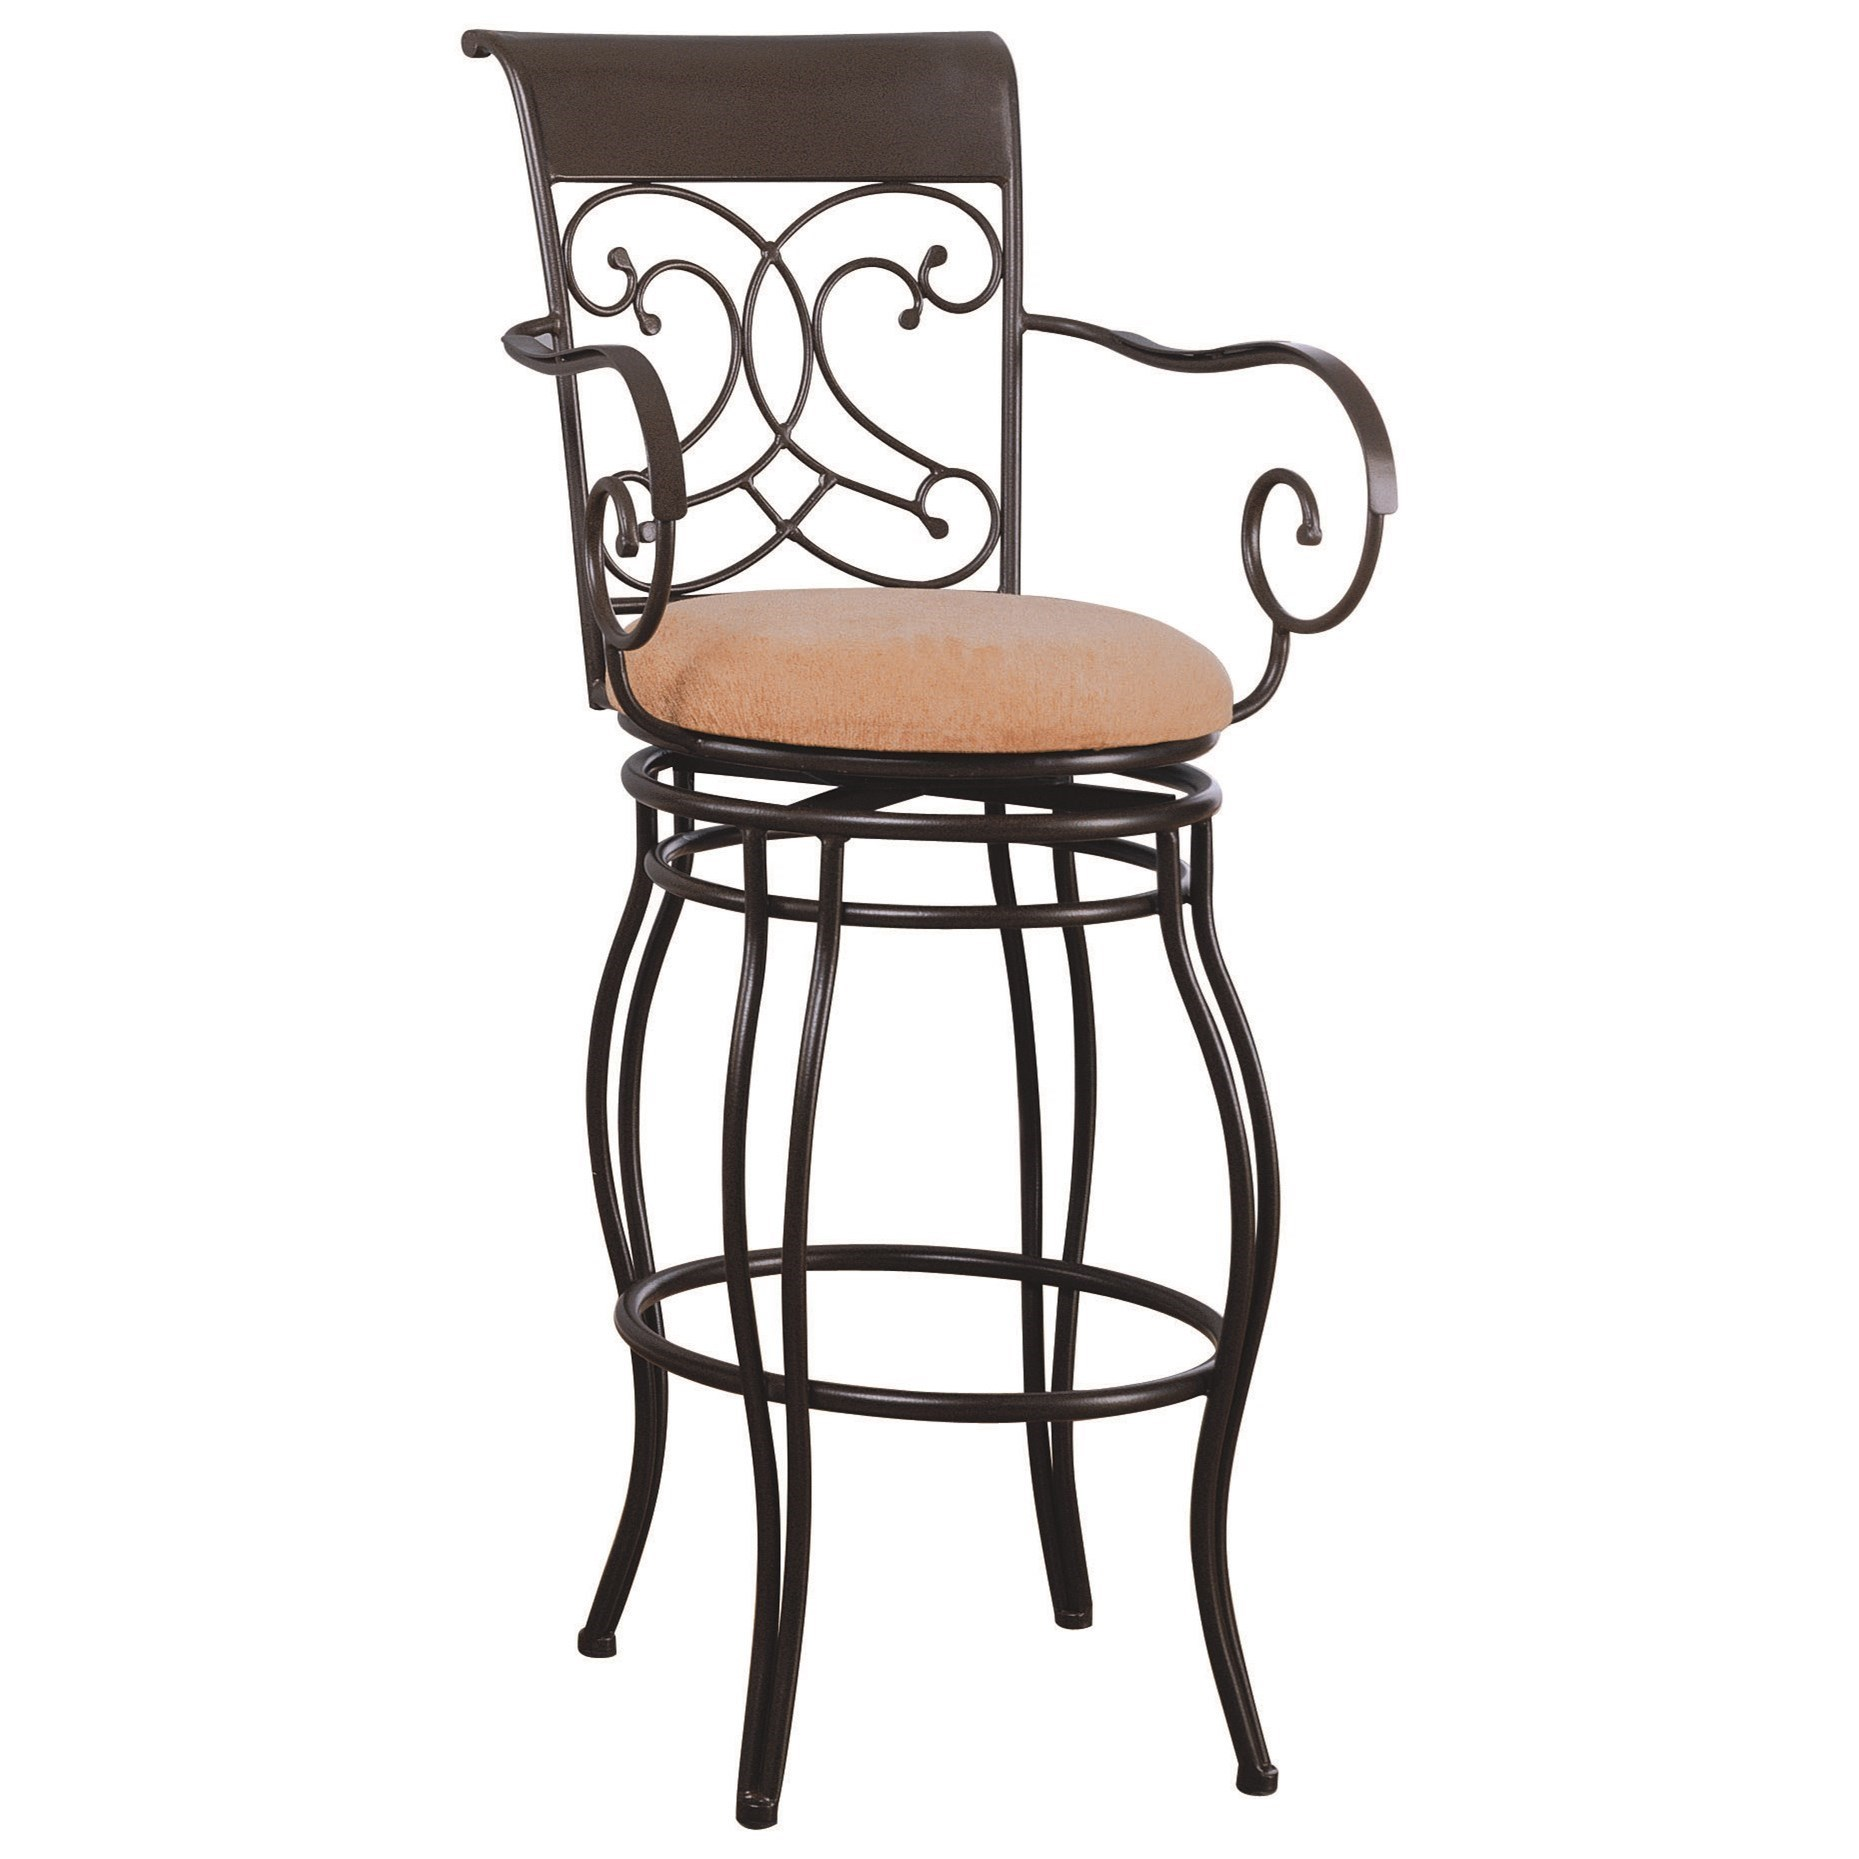 Coaster Dining Chairs And Bar Stools29 ...